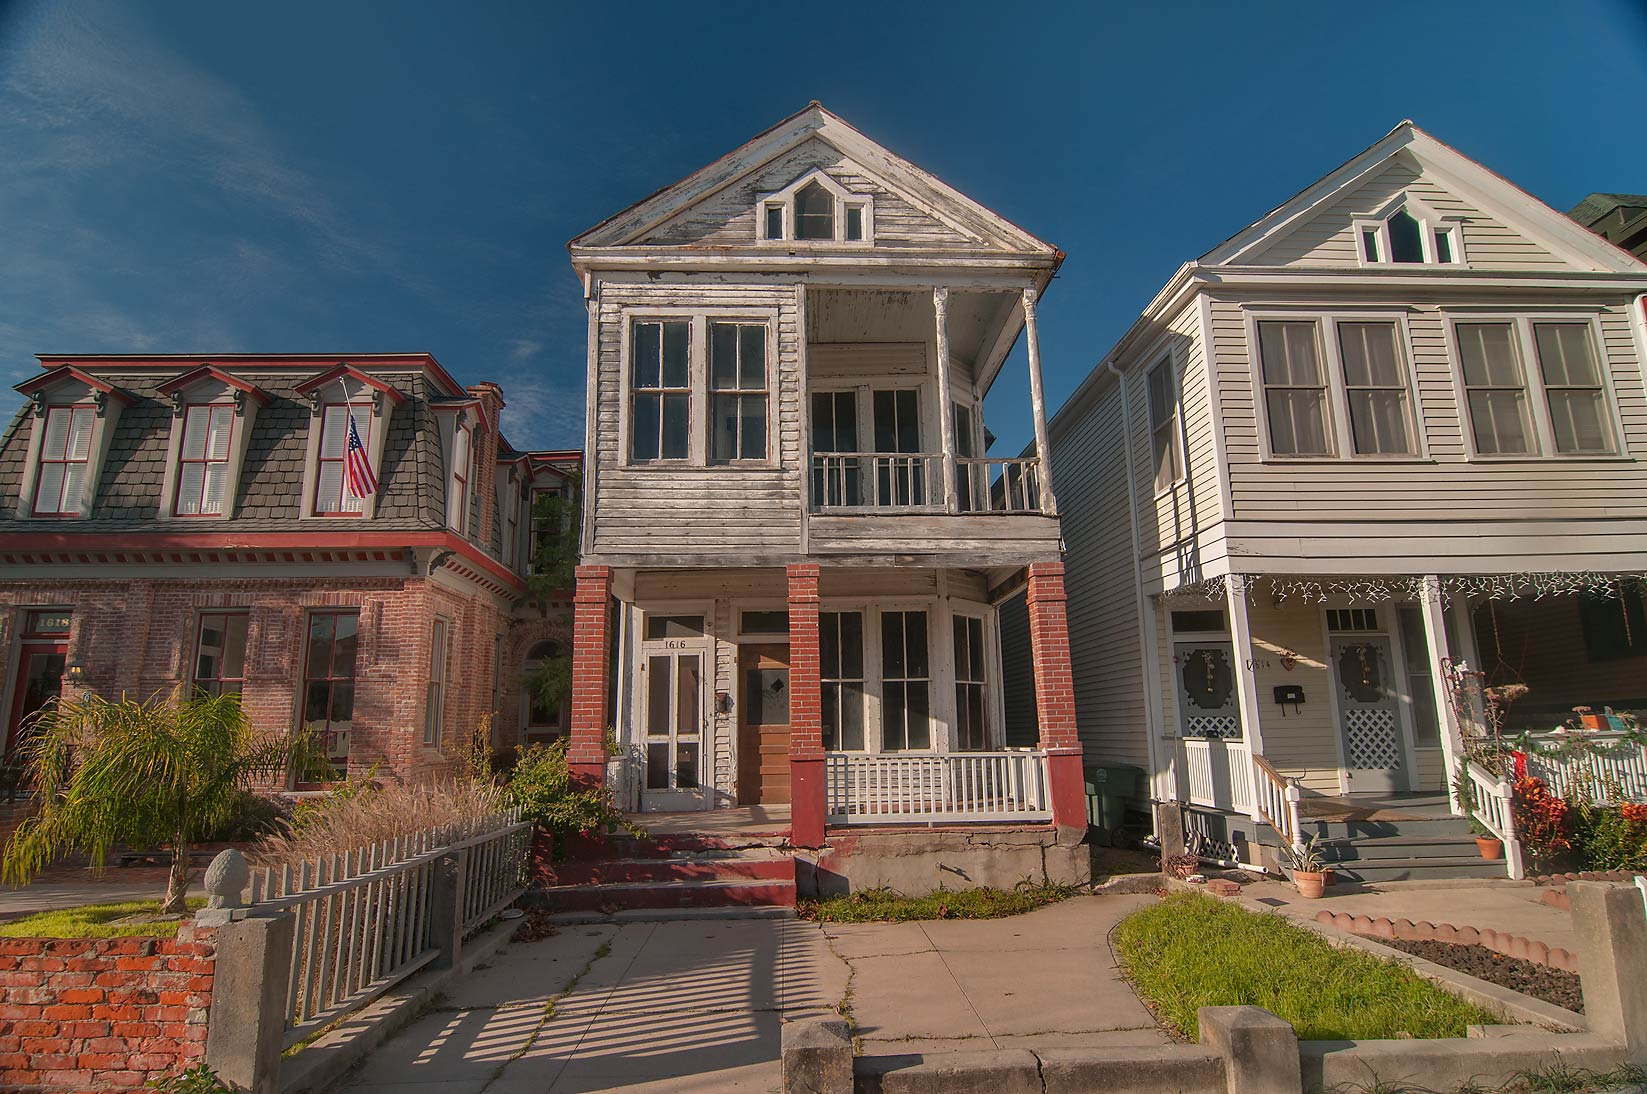 Area of Church St. in East End Historic District. Galveston, Texas